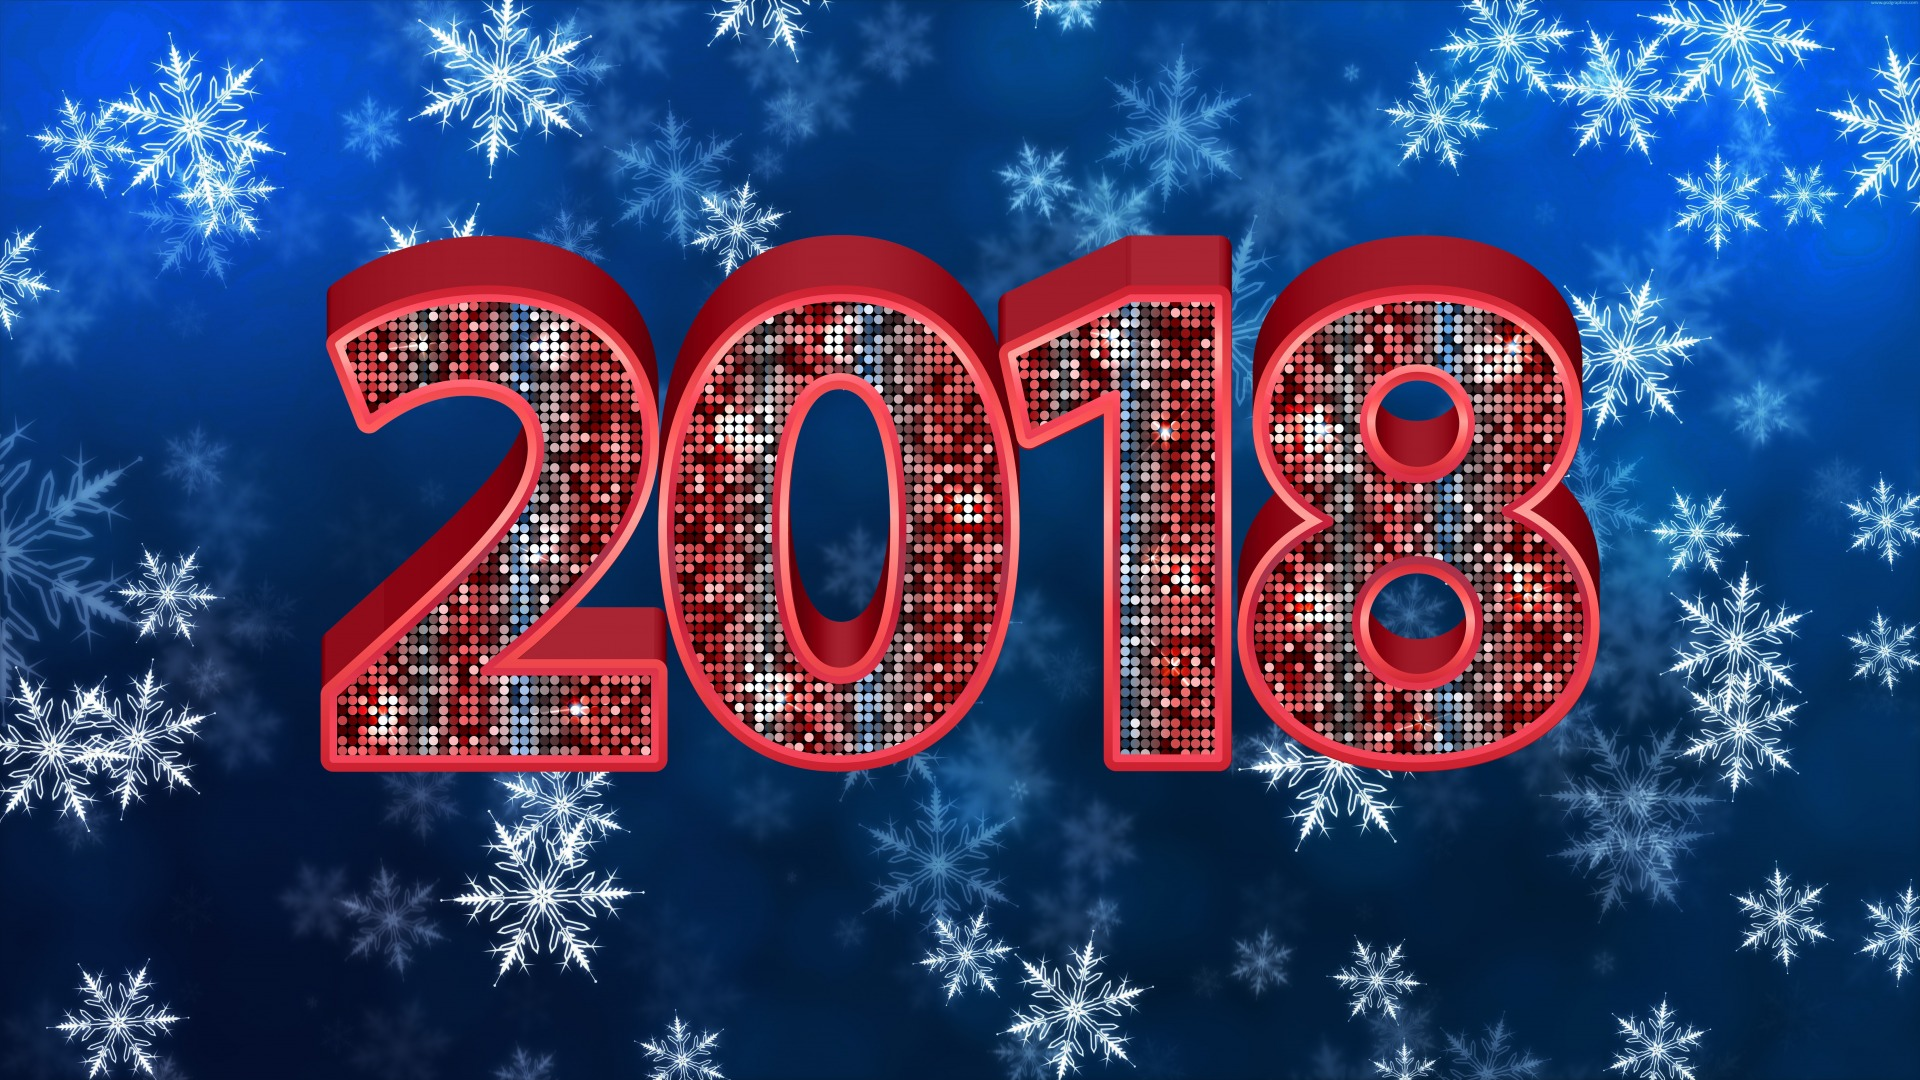 2018 New Year Background Snowflake Red Card Wallpaper